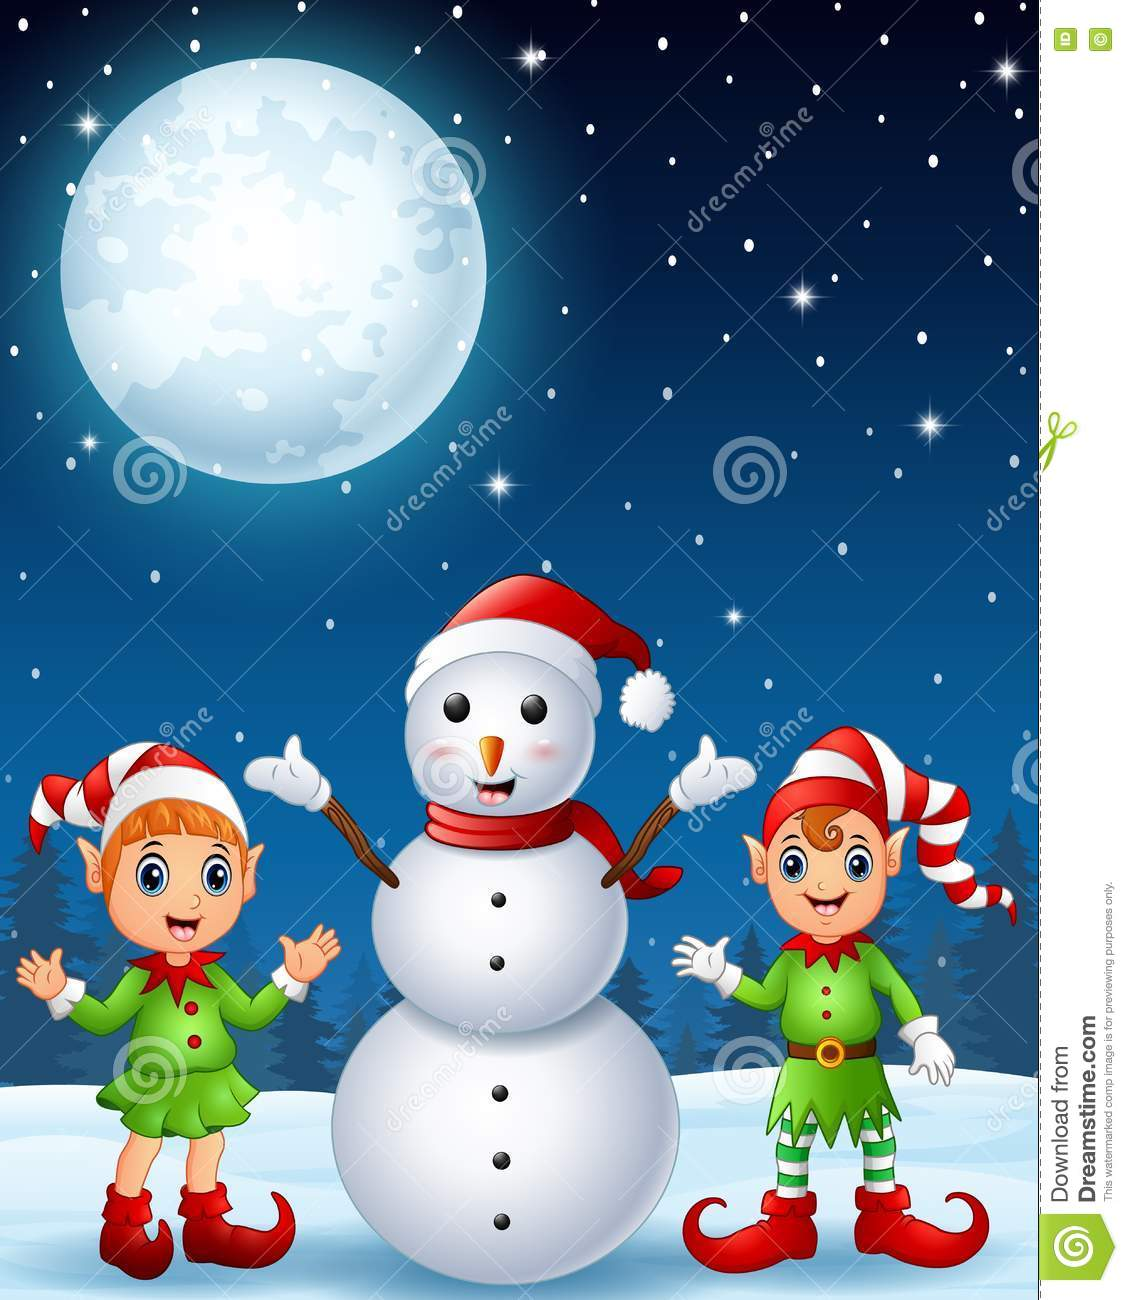 Christmas girl elf with boy elf and snowman in the winter night background